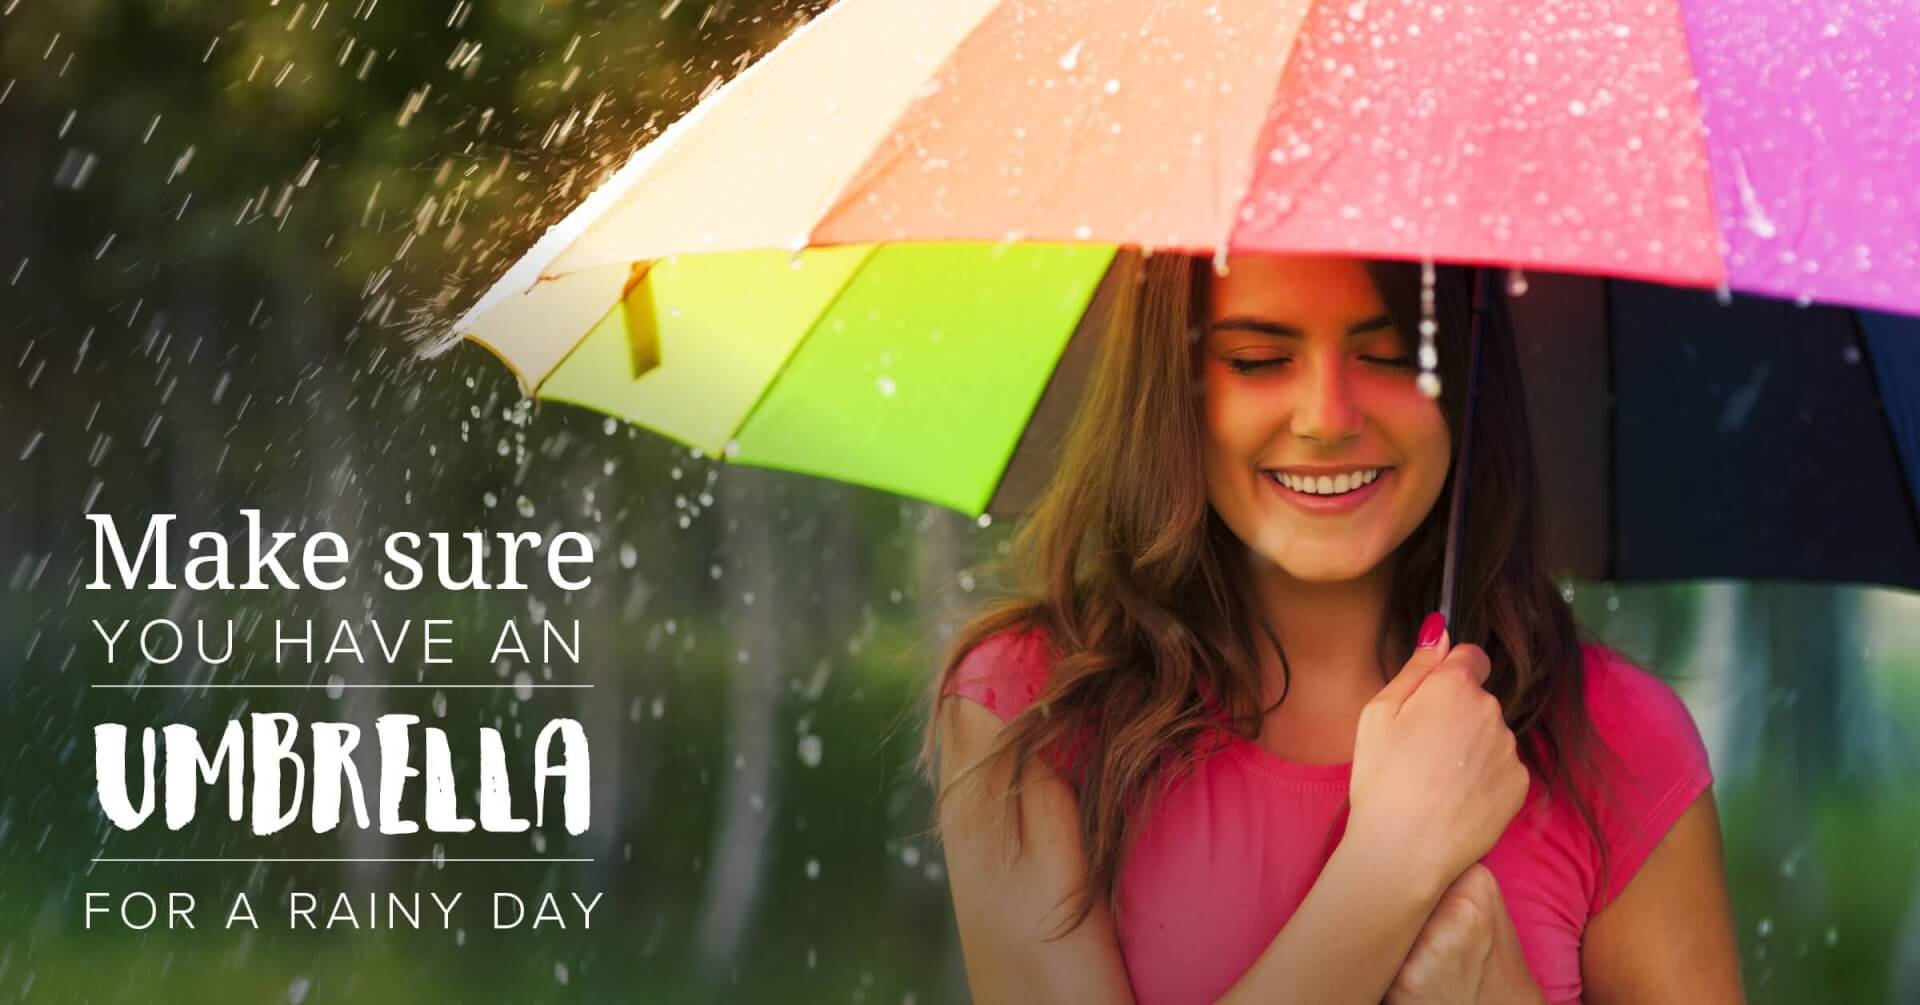 Social Business - Make Sure You Have an Umbrella for a Rainy Day